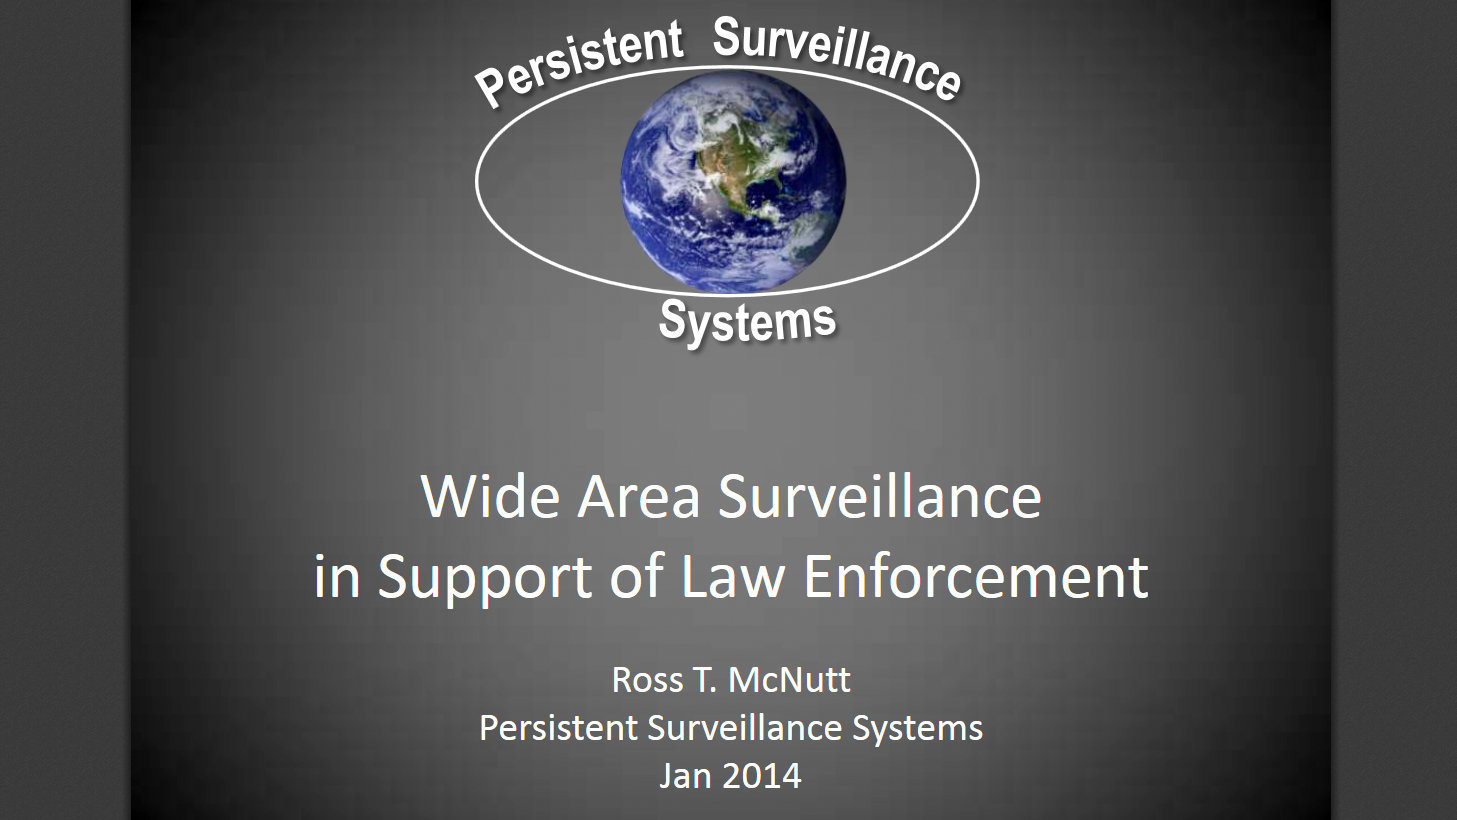 Presentation by the founder of Persistent Surveillance Systems in 2014 that mentions surveillance conducted in Baltimore.